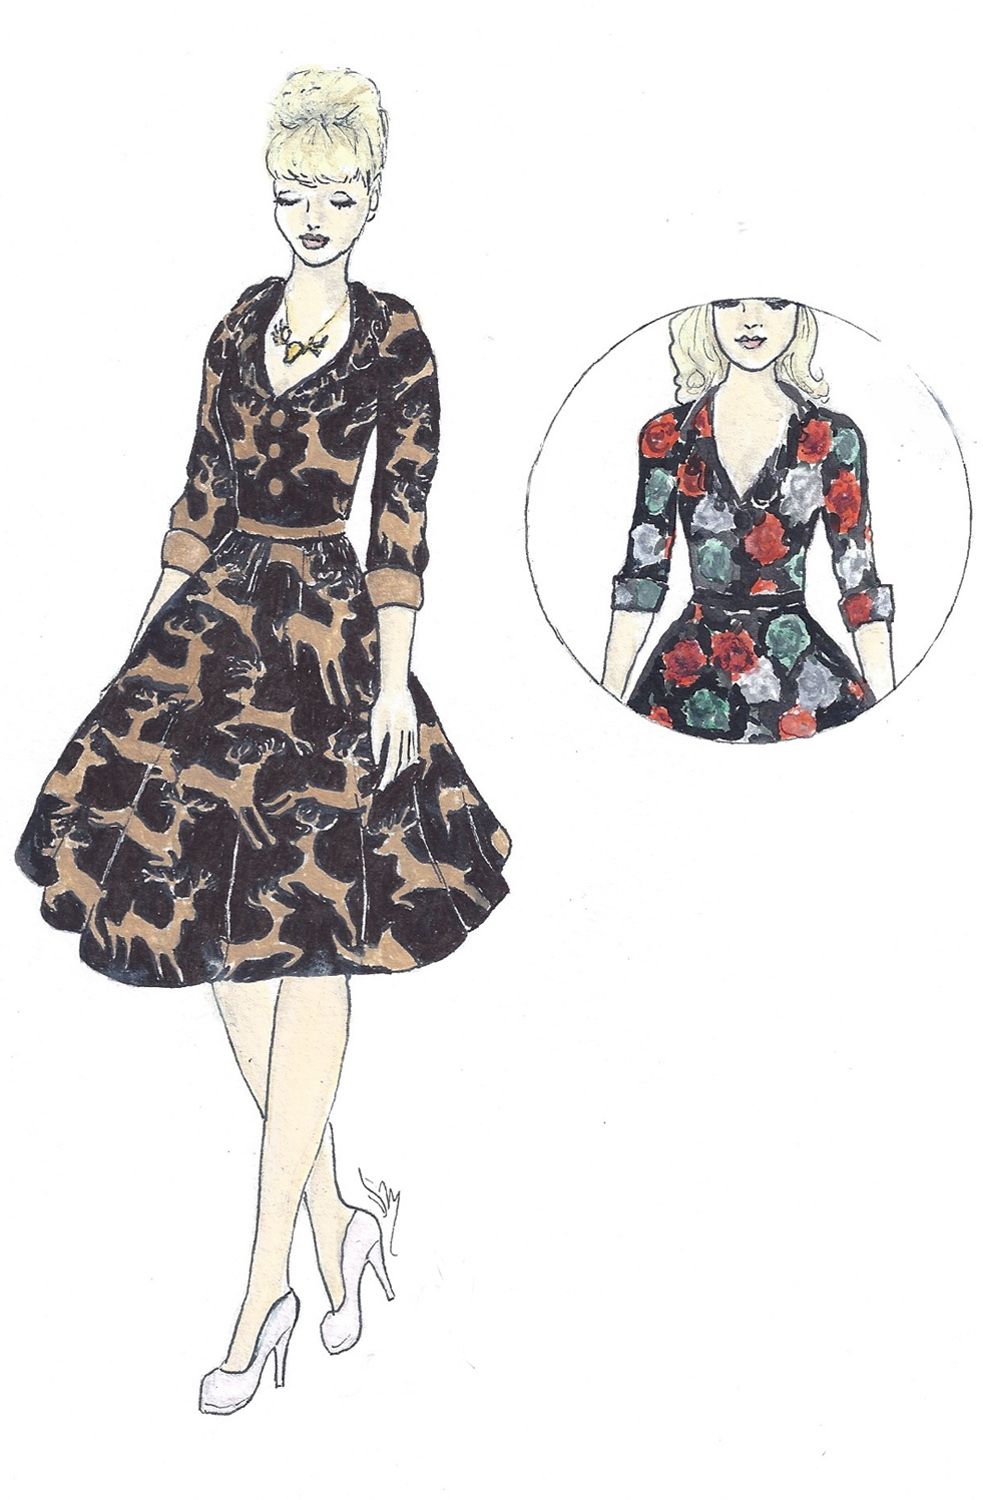 Modcloth Make the Cut Contest Voting and Giveaway for… a Portrait of You